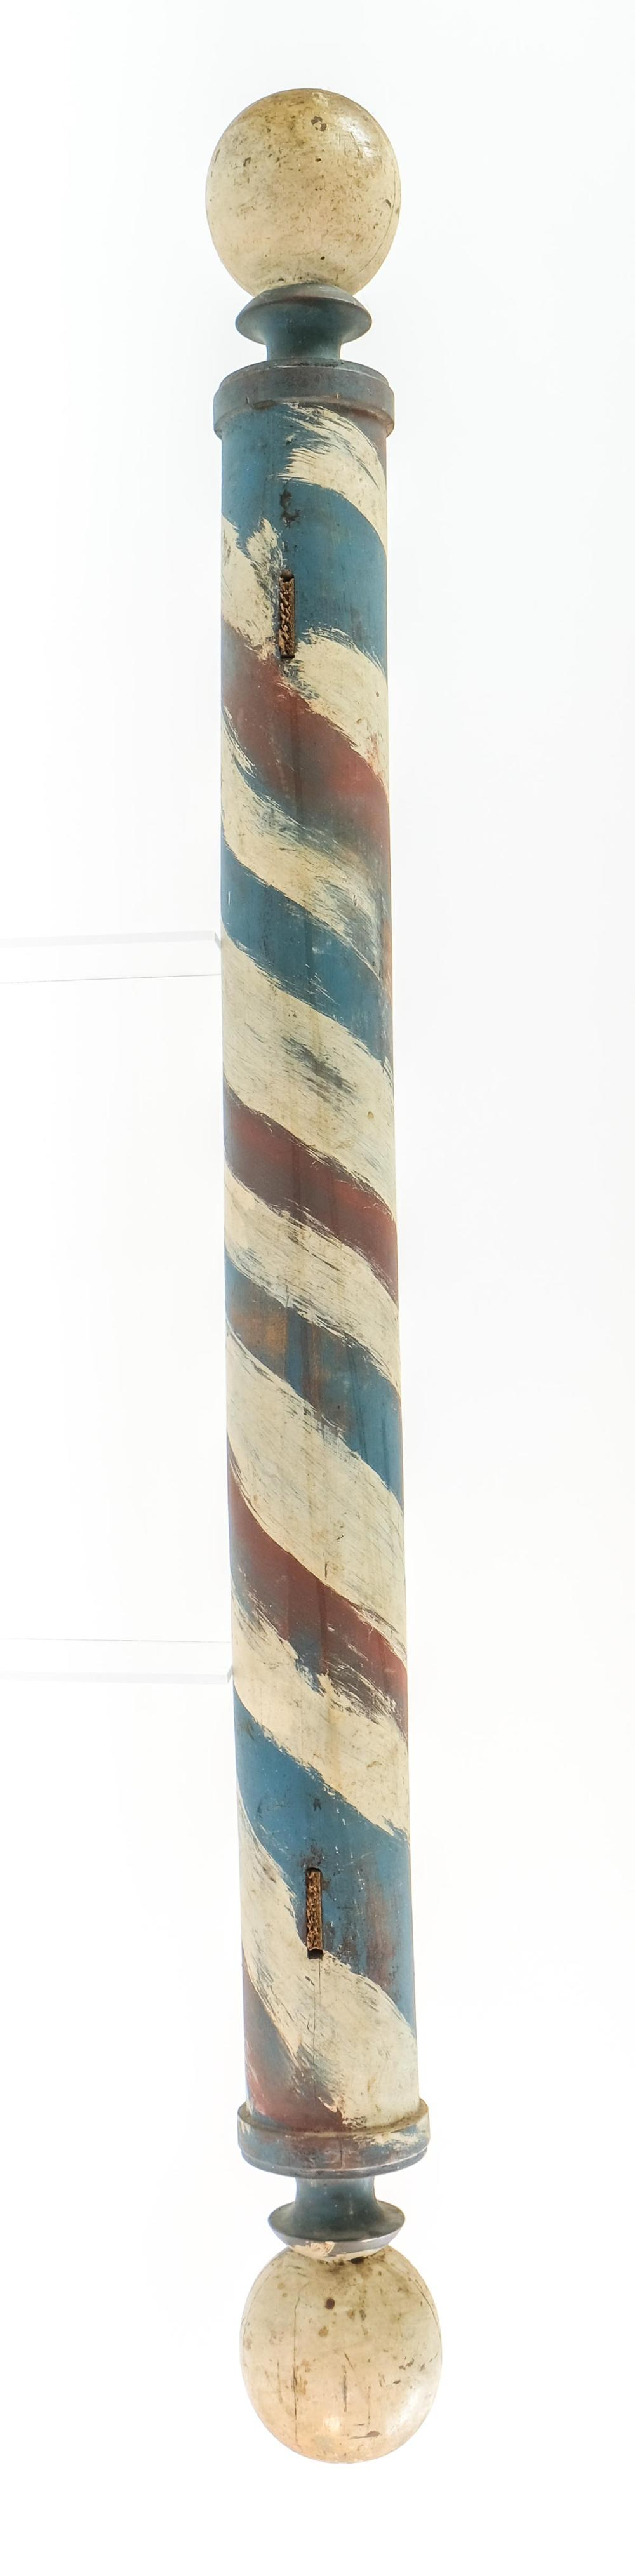 Antique Painted Wood Barbers Pole